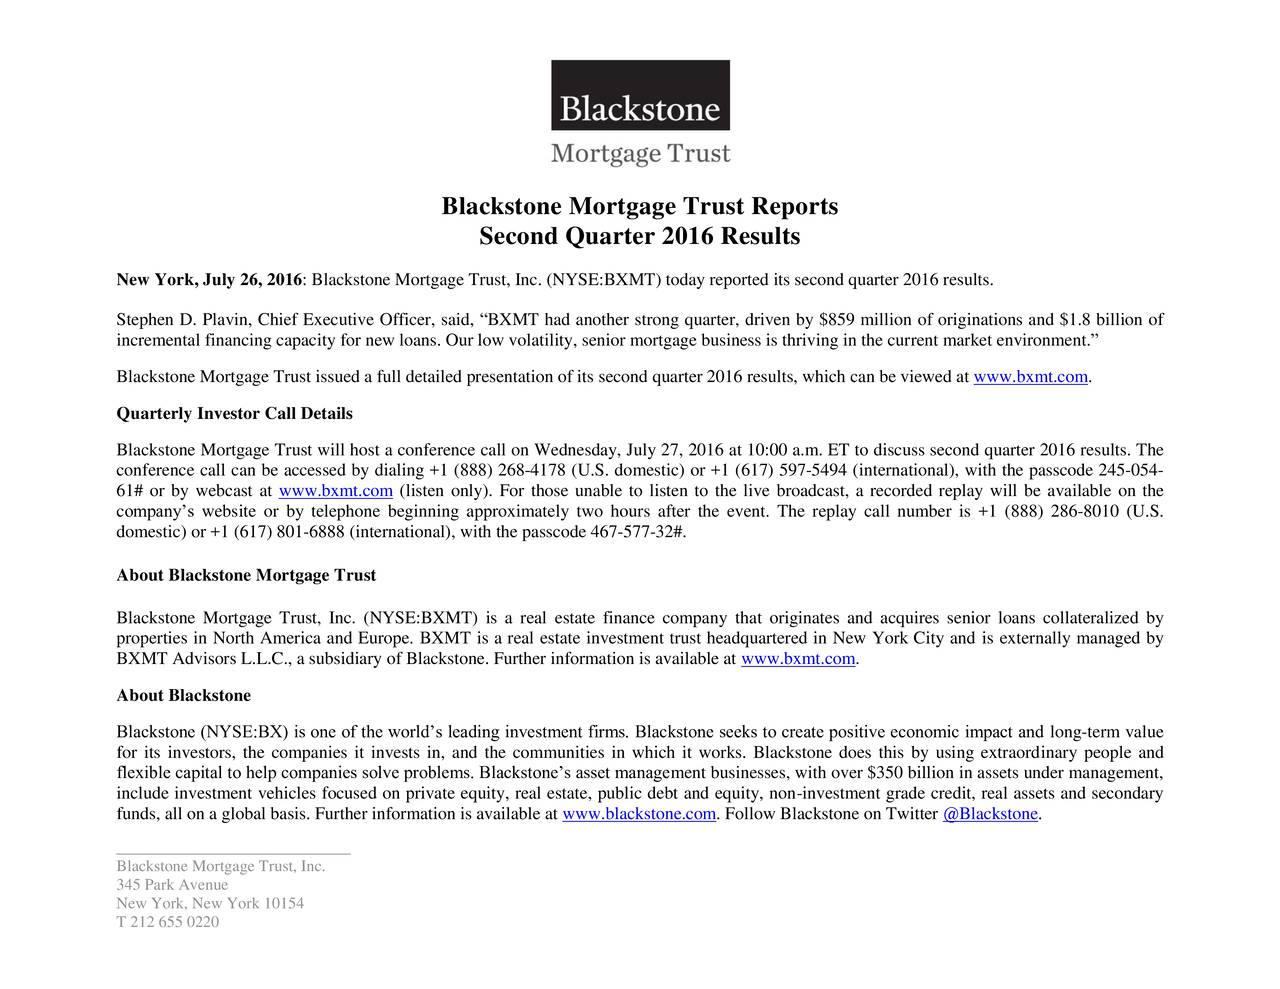 Second Quarter 2016 Results New York, July 26, 2016: Blackstone Mortgage Trust, Inc. (NYSE:BXMT) today reported its second quarter 2016 results. Stephen D. Plavin, Chief Executive Officer, said, BXMT had another strong quarter, driven by $859 million of originations and $1.8 billion of incremental financing capacity for new loans. Our low volatility, senior mortgage business is thriving in the current market environment. Blackstone Mortgage Trust issued a full detailed presentation of its second quarter 2016 results, which can be viewed at www.bxmt.com. Quarterly Investor Call Details Blackstone Mortgage Trust will host a conference call on Wednesday, July 27, 2016 at 10:00 a.m. ET to discuss second quarter 2016 results. The conference call can be accessed by dialing +1 (888) 268-4178 (U.S. domestic) or +1 (617) 597-5494 (international), with the passcode 245-054- 61# or by webcast at www.bxmt.com (listen only). For those unable to listen to the live broadcast, a recorded replay will be available on the companys website or by telephone beginning approximately two hours after the event. The replay call number is +1 (888) 286-8010 (U.S. domestic) or +1 (617) 801-6888 (international), with the passcode 467-577-32#. About Blackstone Mortgage Trust Blackstone Mortgage Trust, Inc. (NYSE:BXMT) is a real estate finance company that originates and acquires senior loans collateralized by properties in North America and Europe. BXMT is a real estate investment trust headquartered in New York City and is externally managed by BXMT Advisors L.L.C., a subsidiary of Blackstone. Further information is available at www.bxmt.com. About Blackstone Blackstone (NYSE:BX) is one of the worlds leading investment firms. Blackstone seeks to create positive economic impact and long-term value for its investors, the companies it invests in, and the communities in which it works. Blackstone does this by using extraordinary people and flexible capital to help companies solve problems. Blackstones asset management businesses, with over $350 billion in assets under management, include investment vehicles focused on private equity, real estate, public debt and equity, non-investment grade credit, real assets and secondary funds, all on a global basis. Further information is available at www.blackstone.com. Follow Blackstone on Twitter @Blackstone. _____________________________ Blackstone Mortgage Trust, Inc. 345 Park Avenue New York, New York 10154 T 212 655 0220